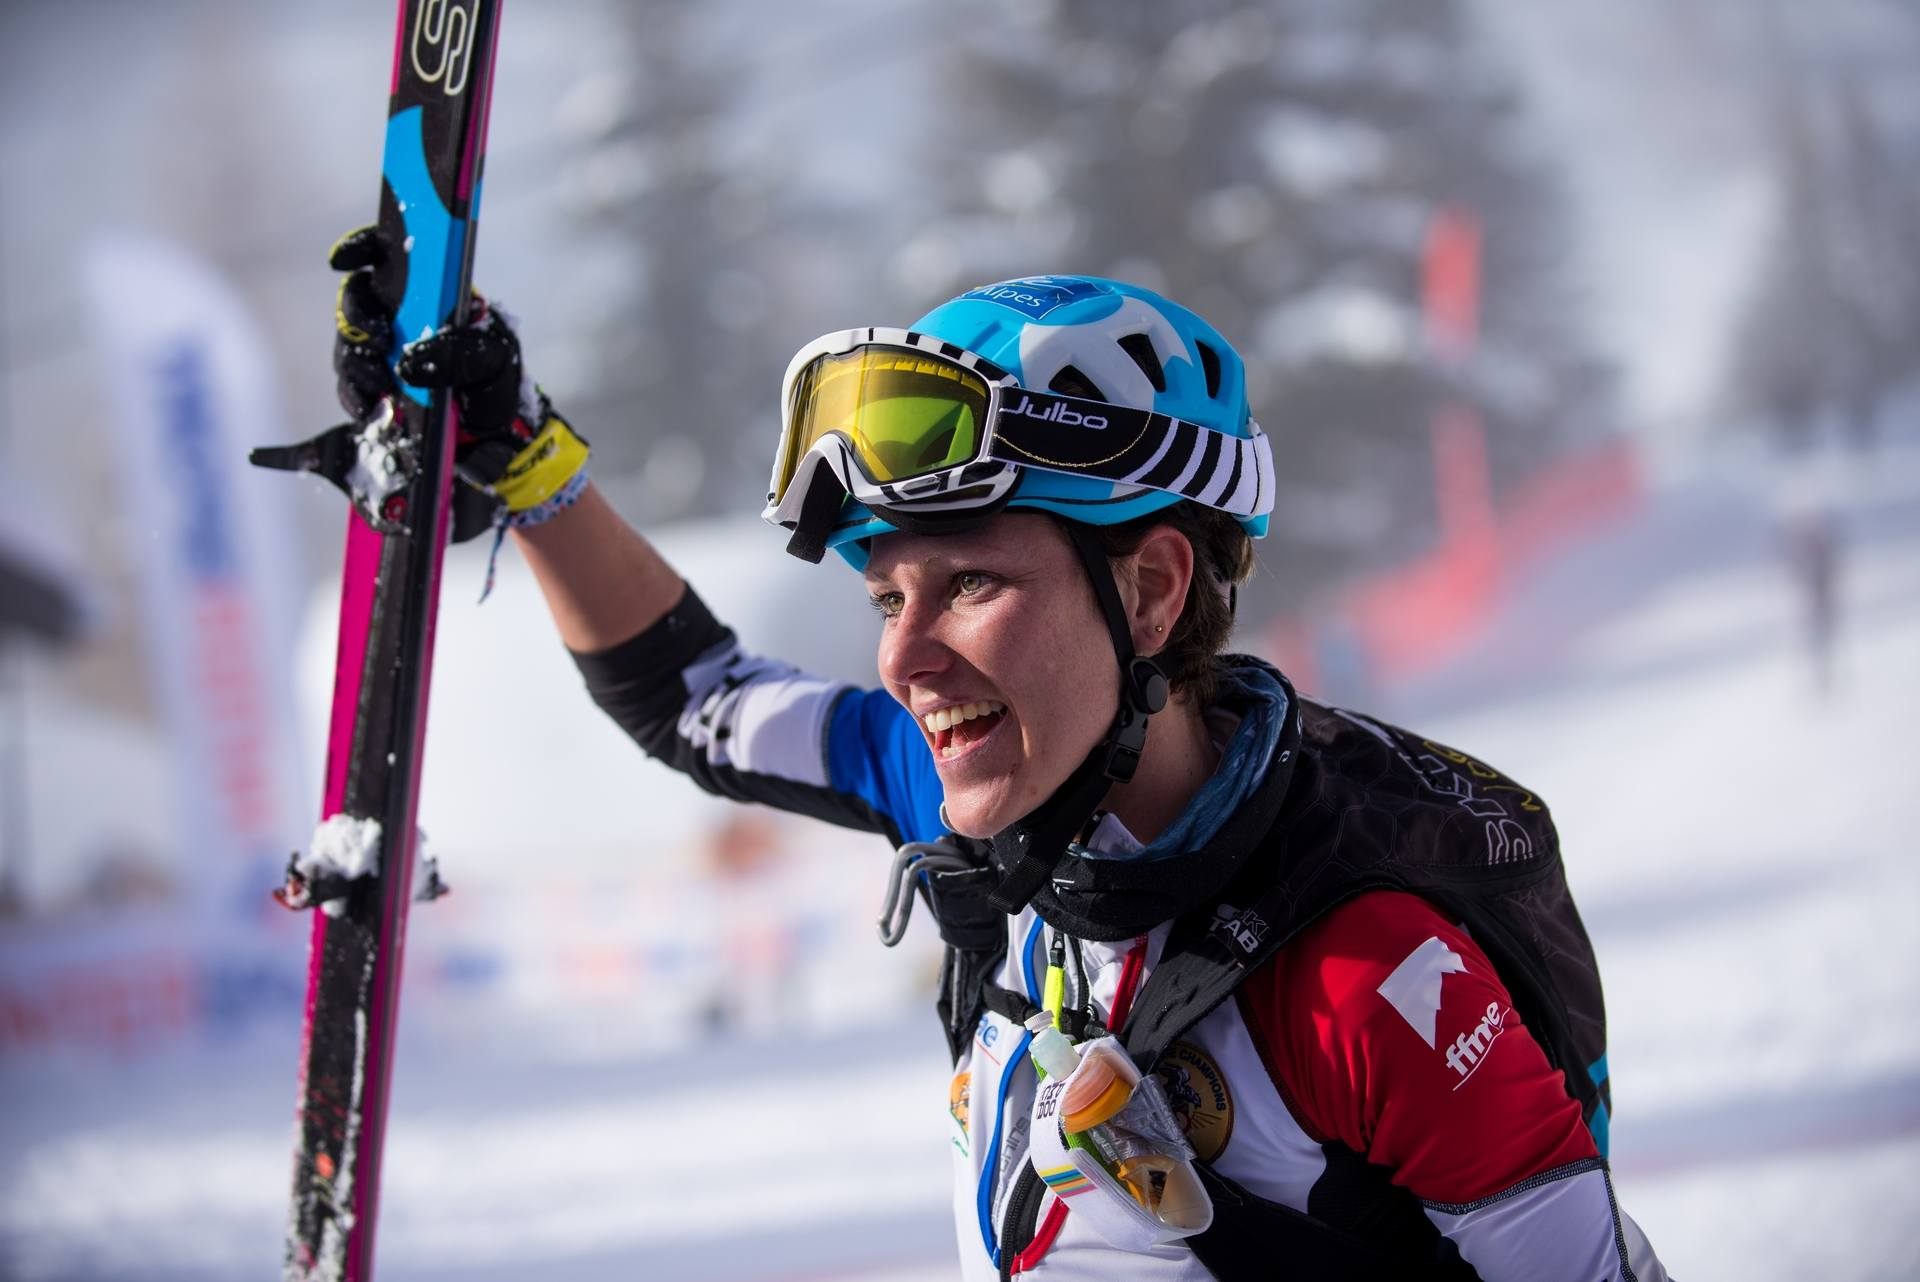 Laetitia victorieuse, skis à la main